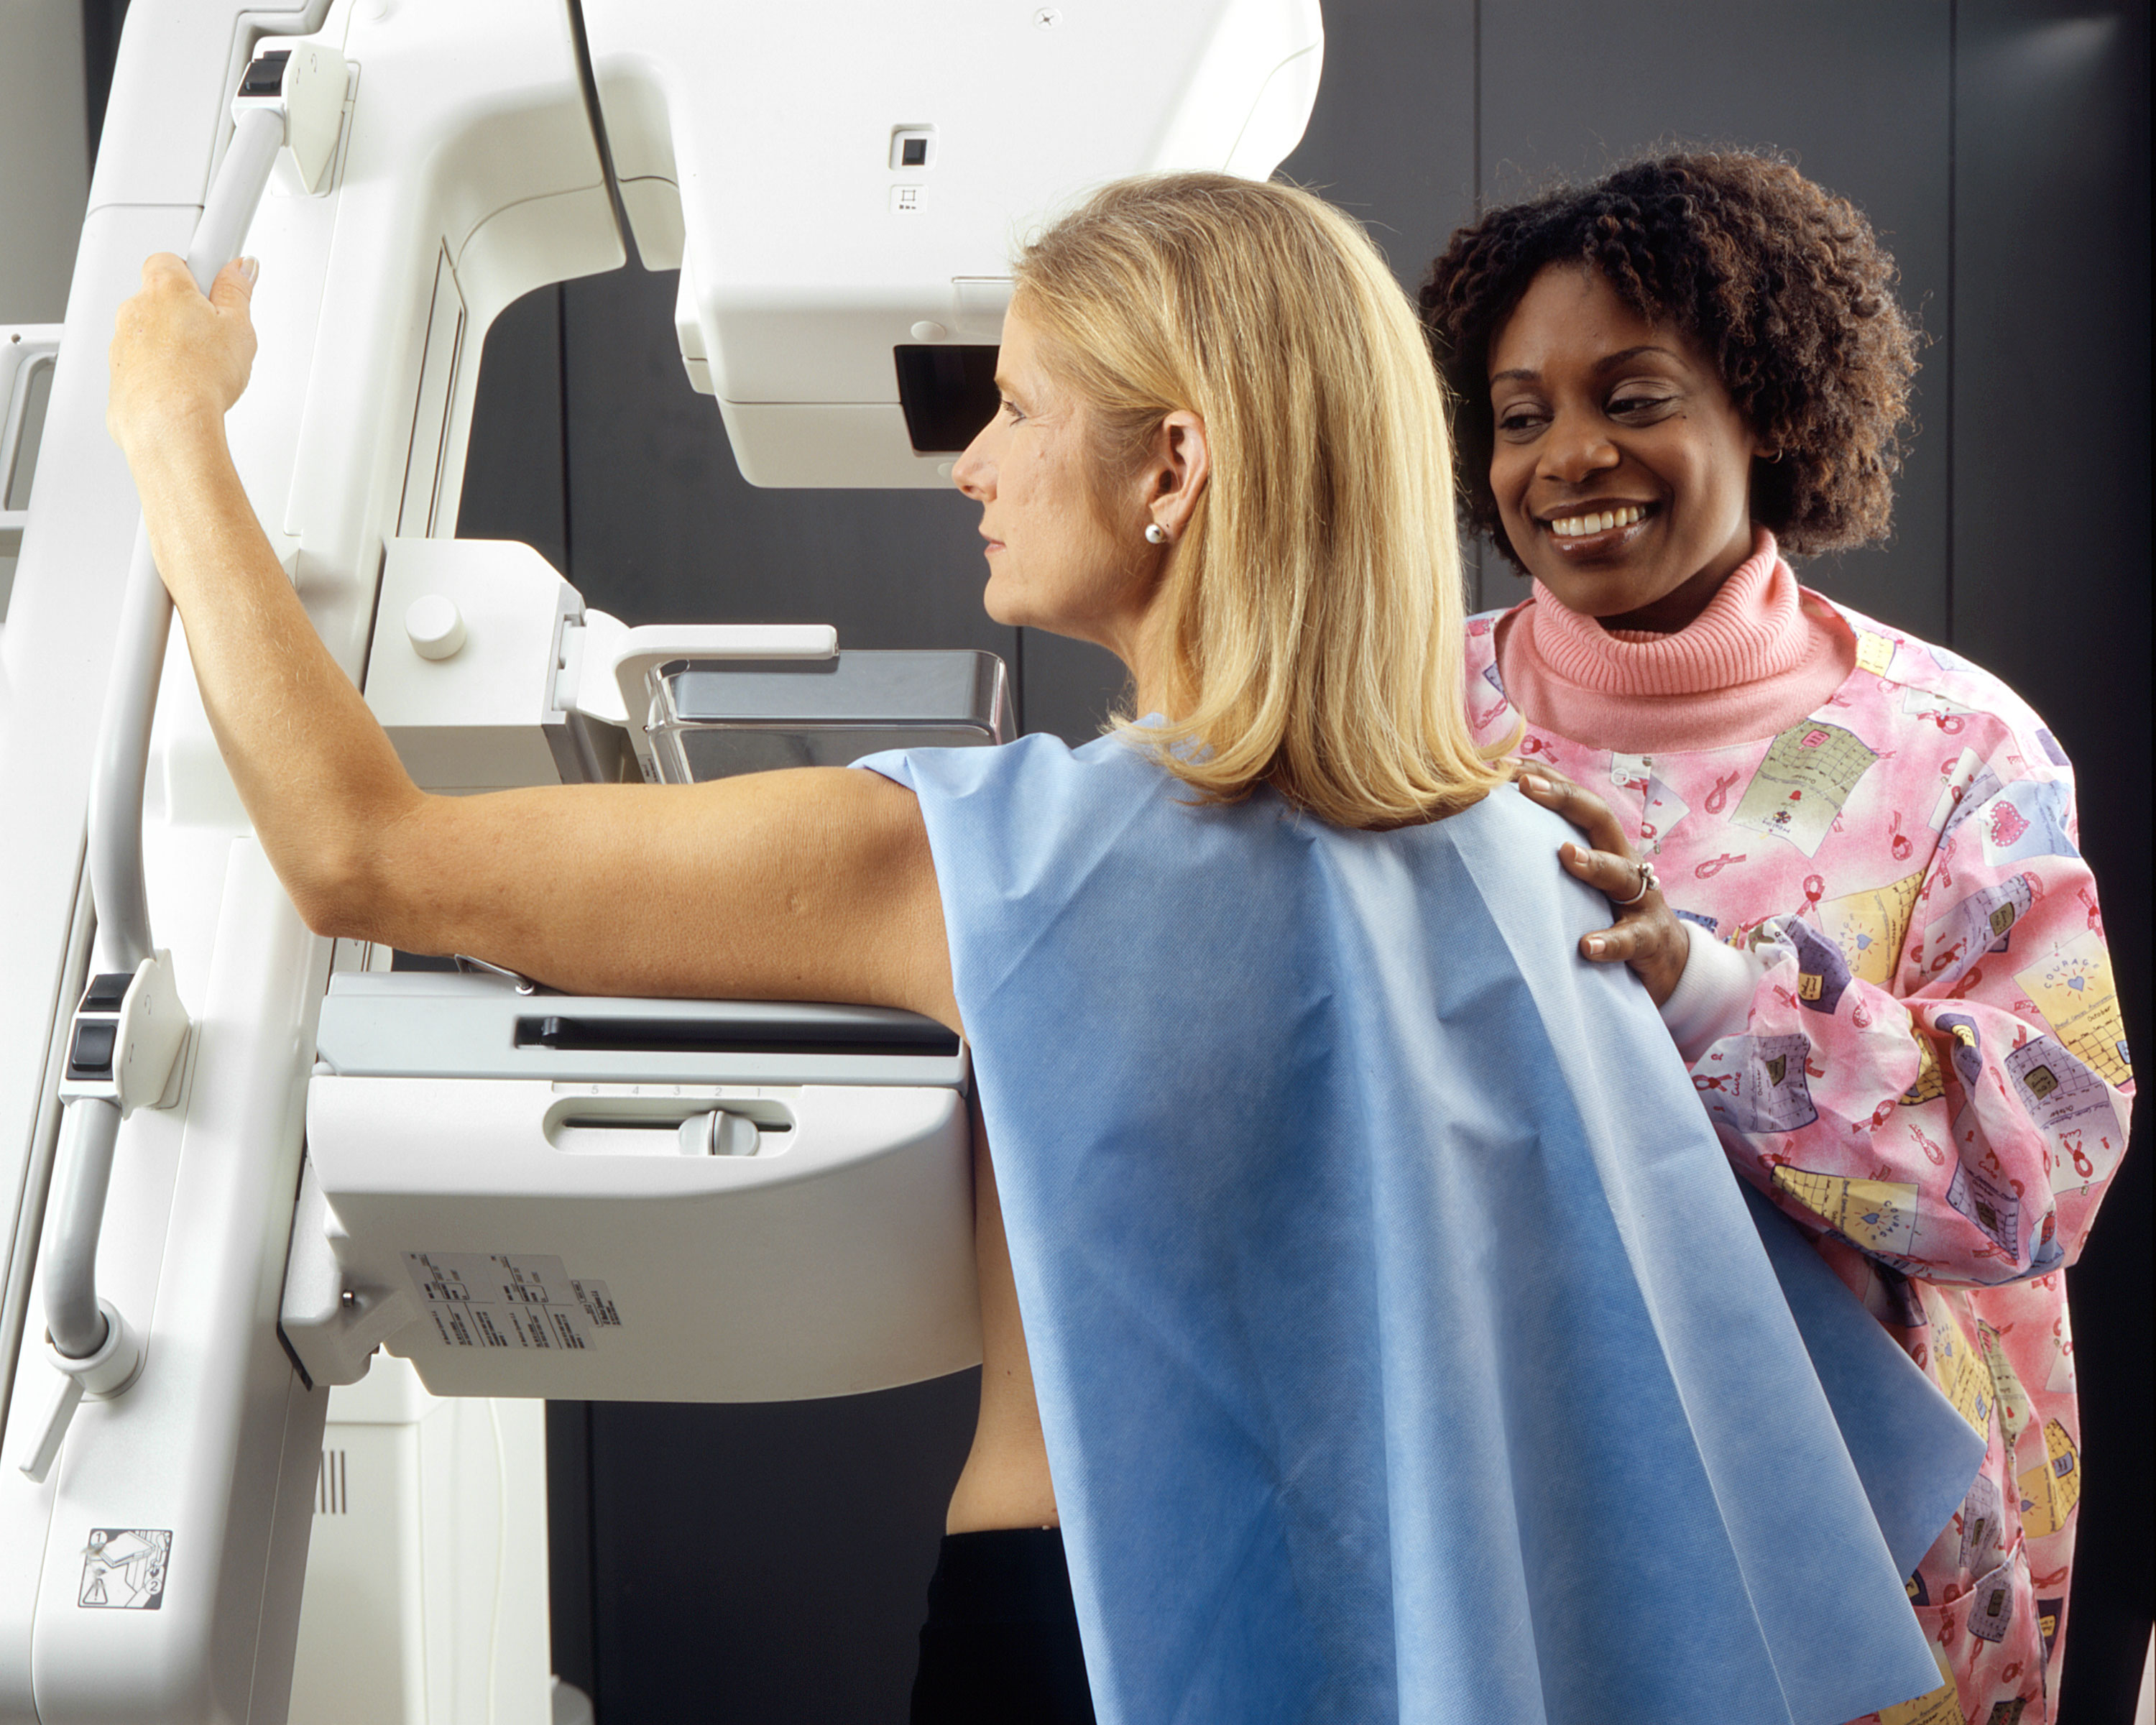 Know your options: New book demystifies breast reconstruction